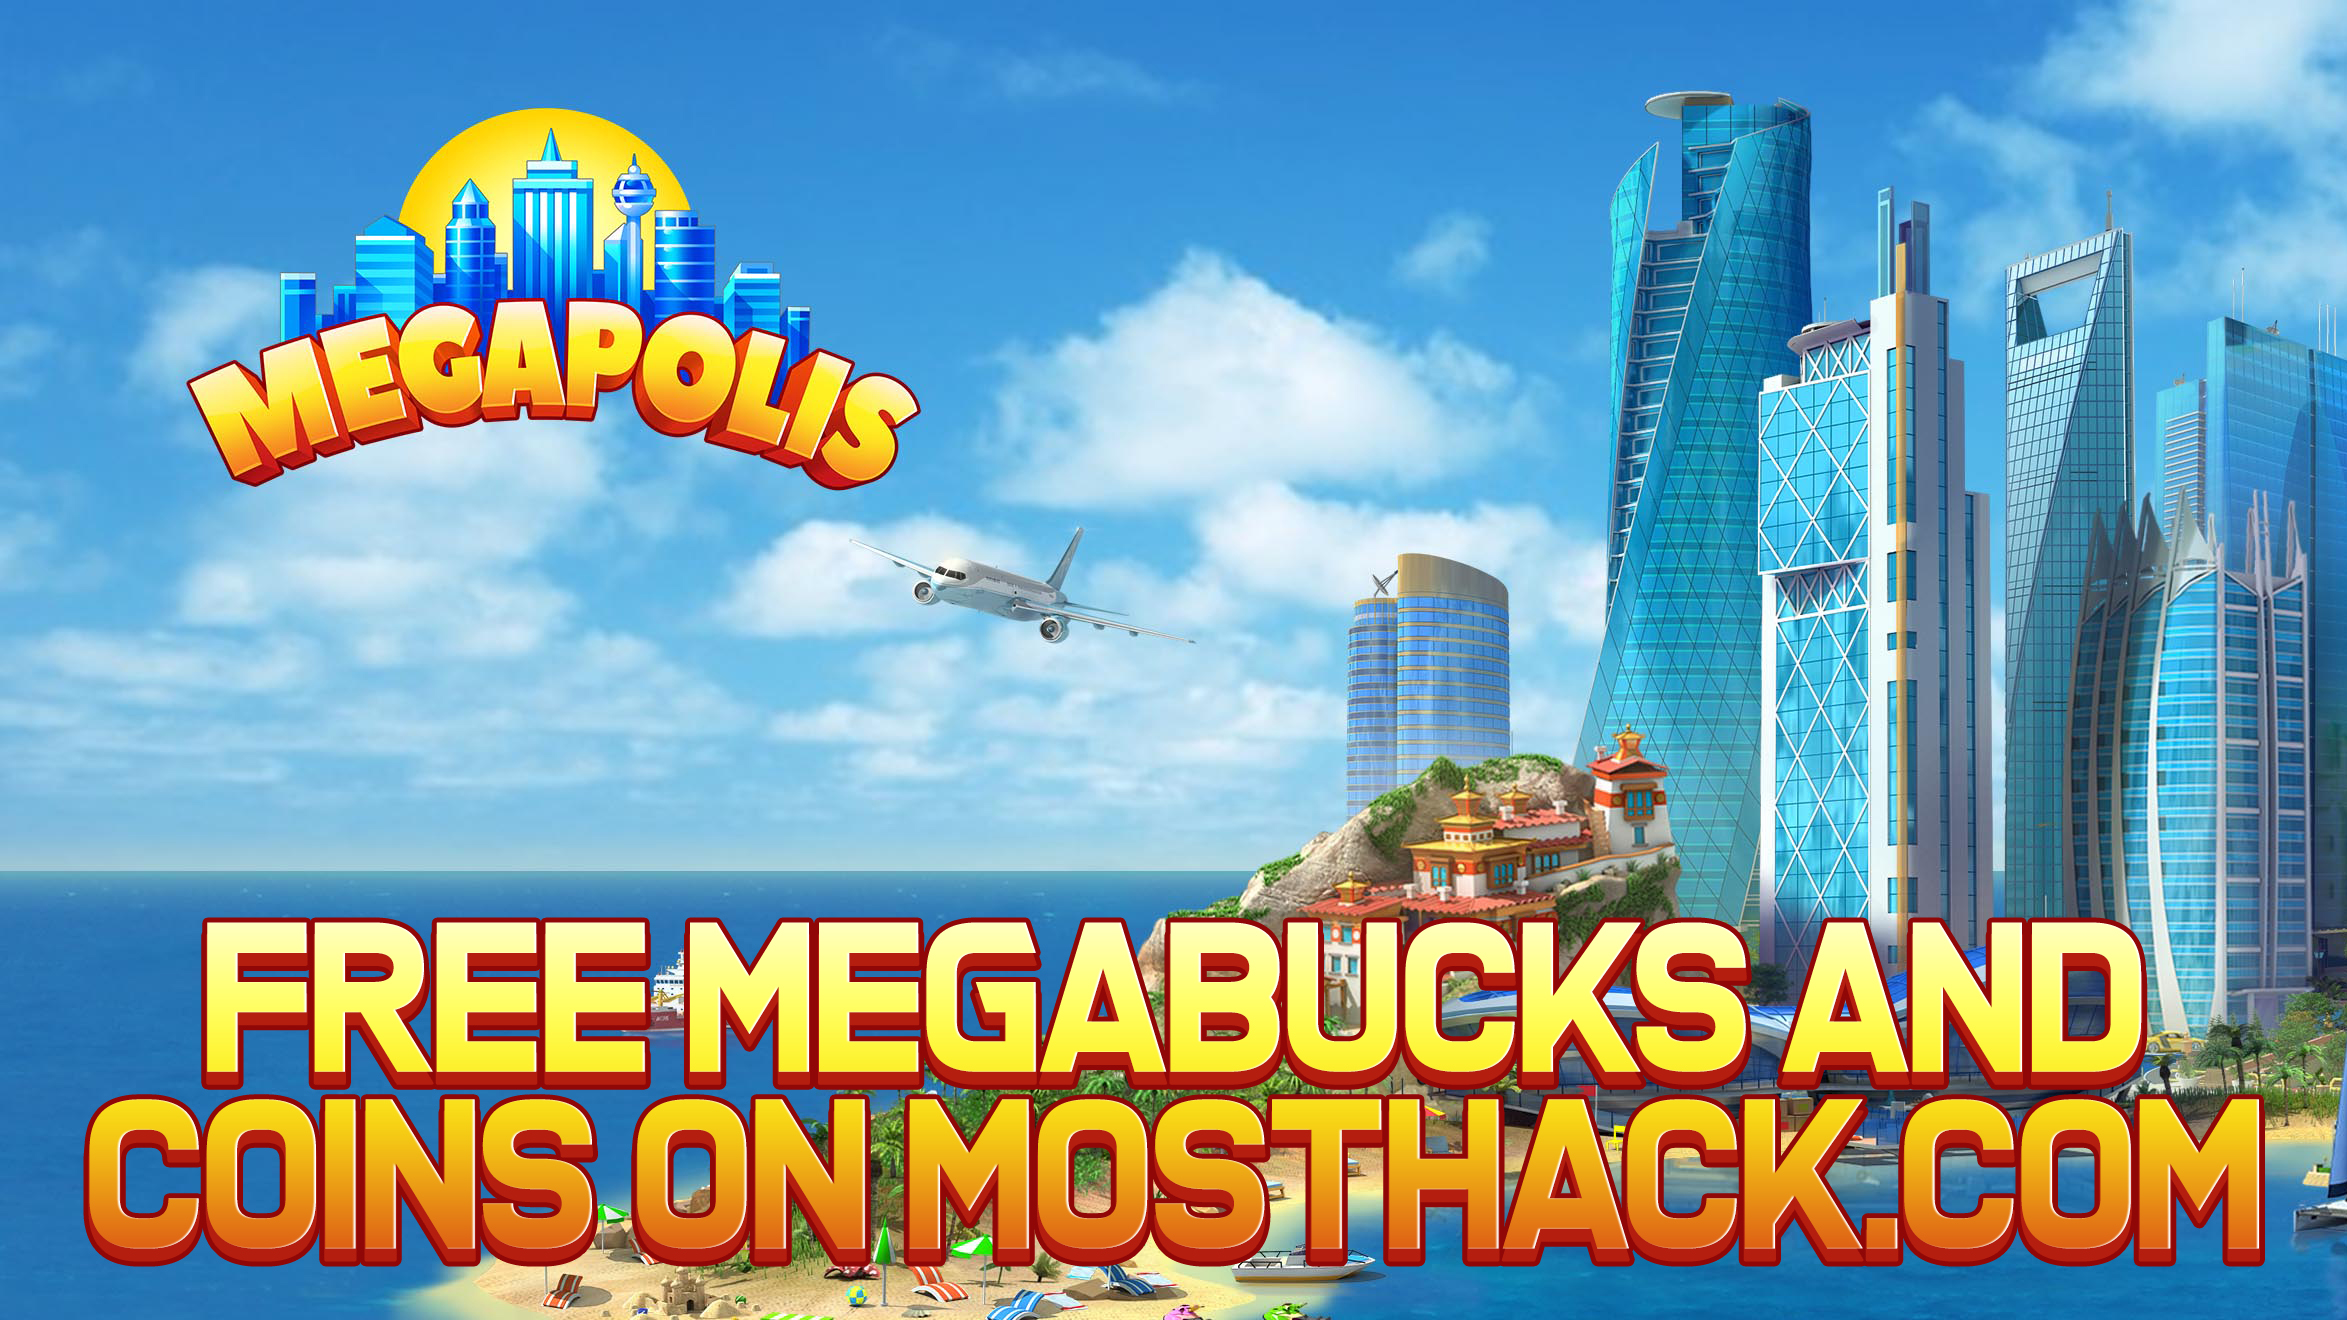 Image currently unavailable. Go to www.generator.mosthack.com and choose Megapolis image, you will be redirect to Megapolis Generator site.